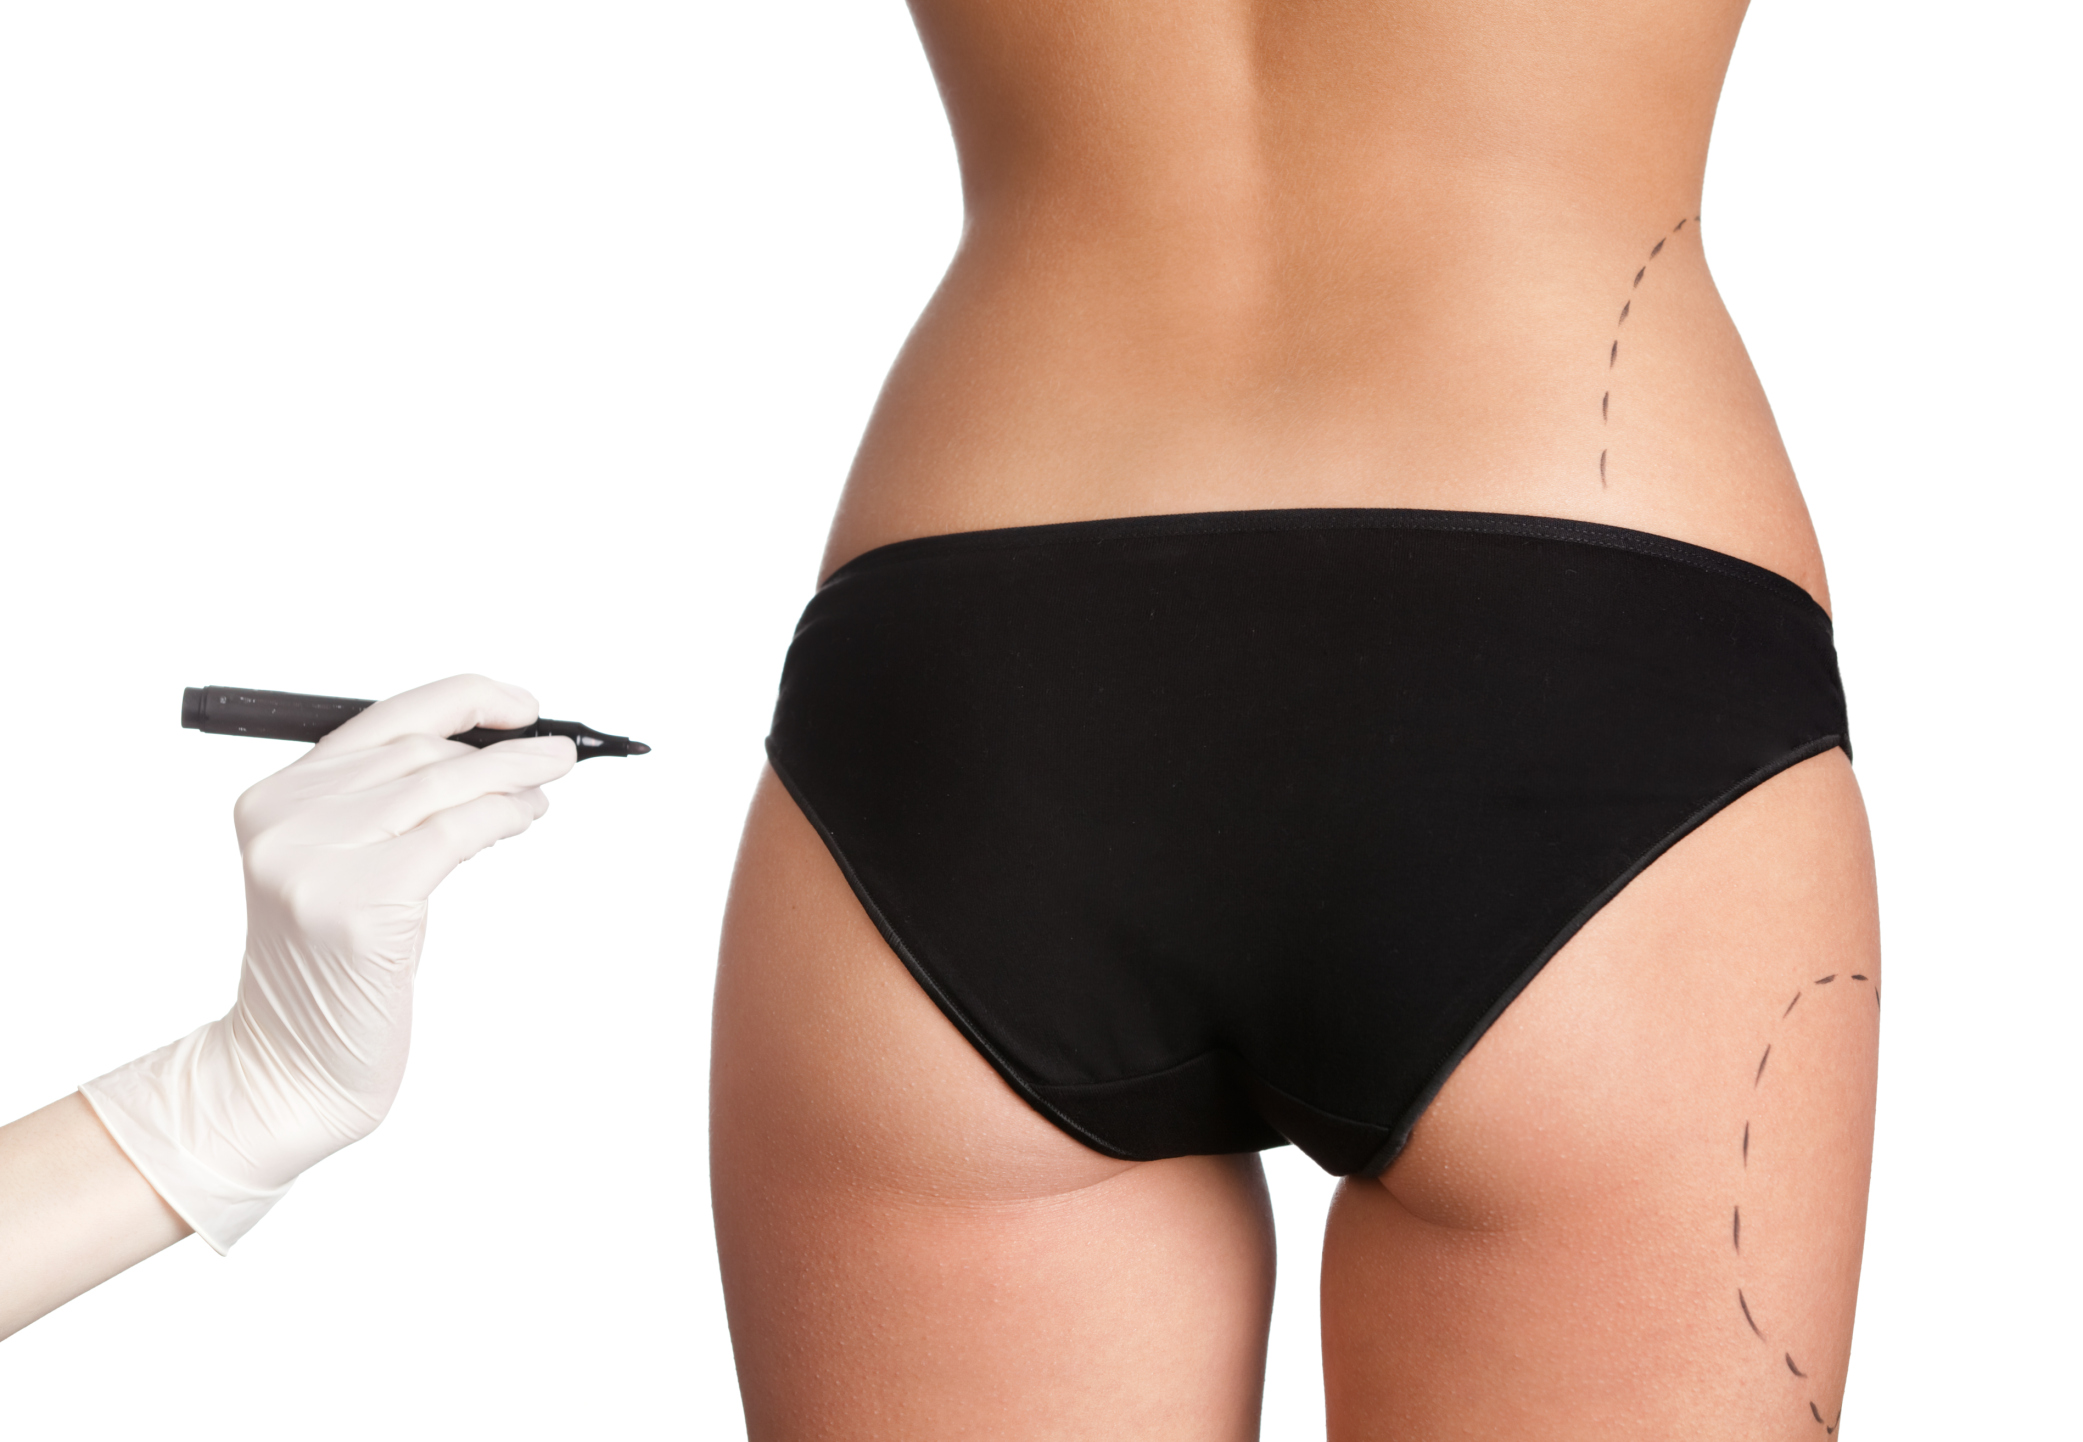 The Cosmetic and Restorative Surgery